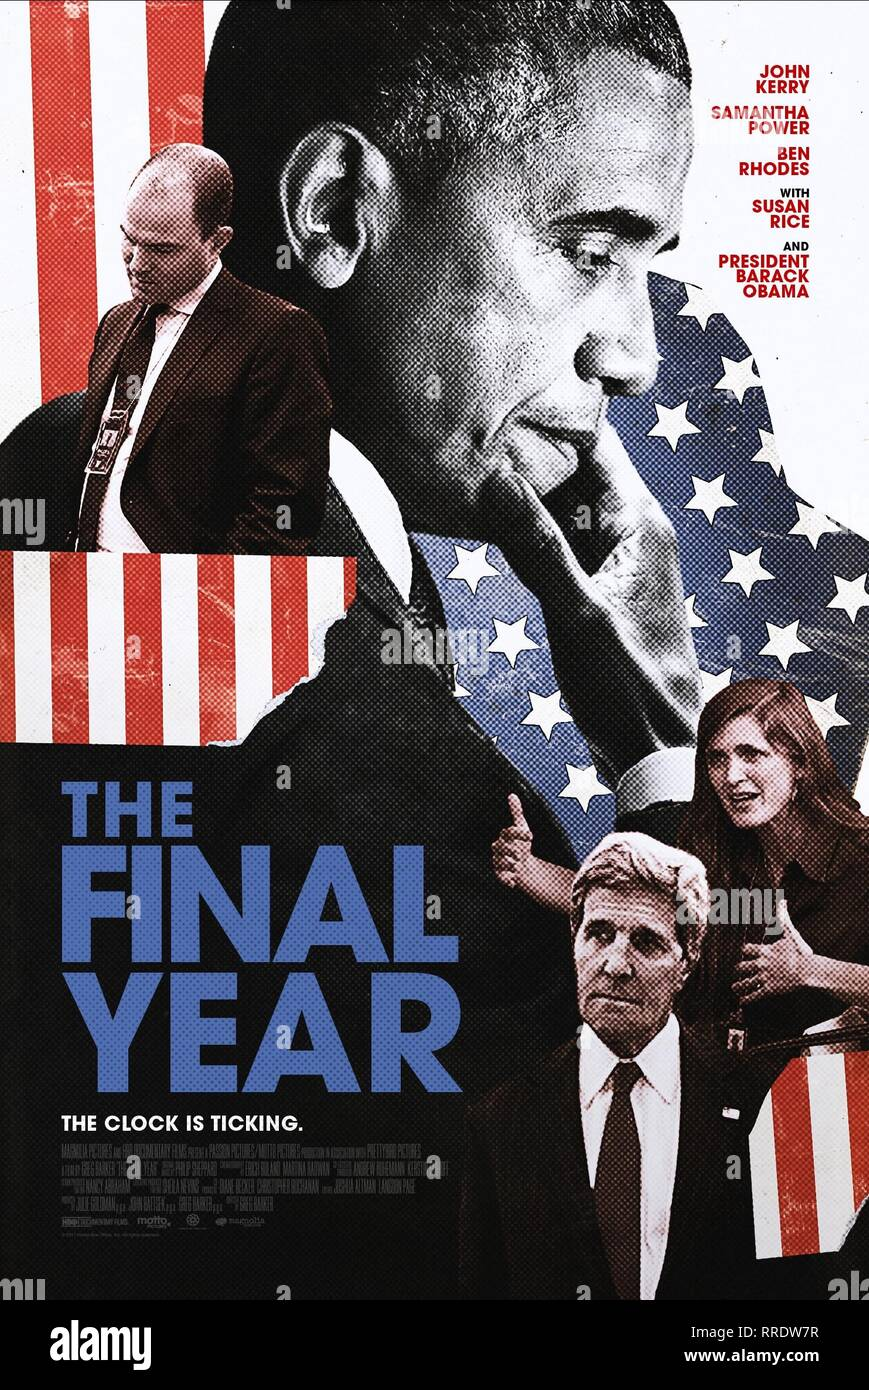 THE FINAL YEAR, MOVIE POSTER, 2017 Stock Photo